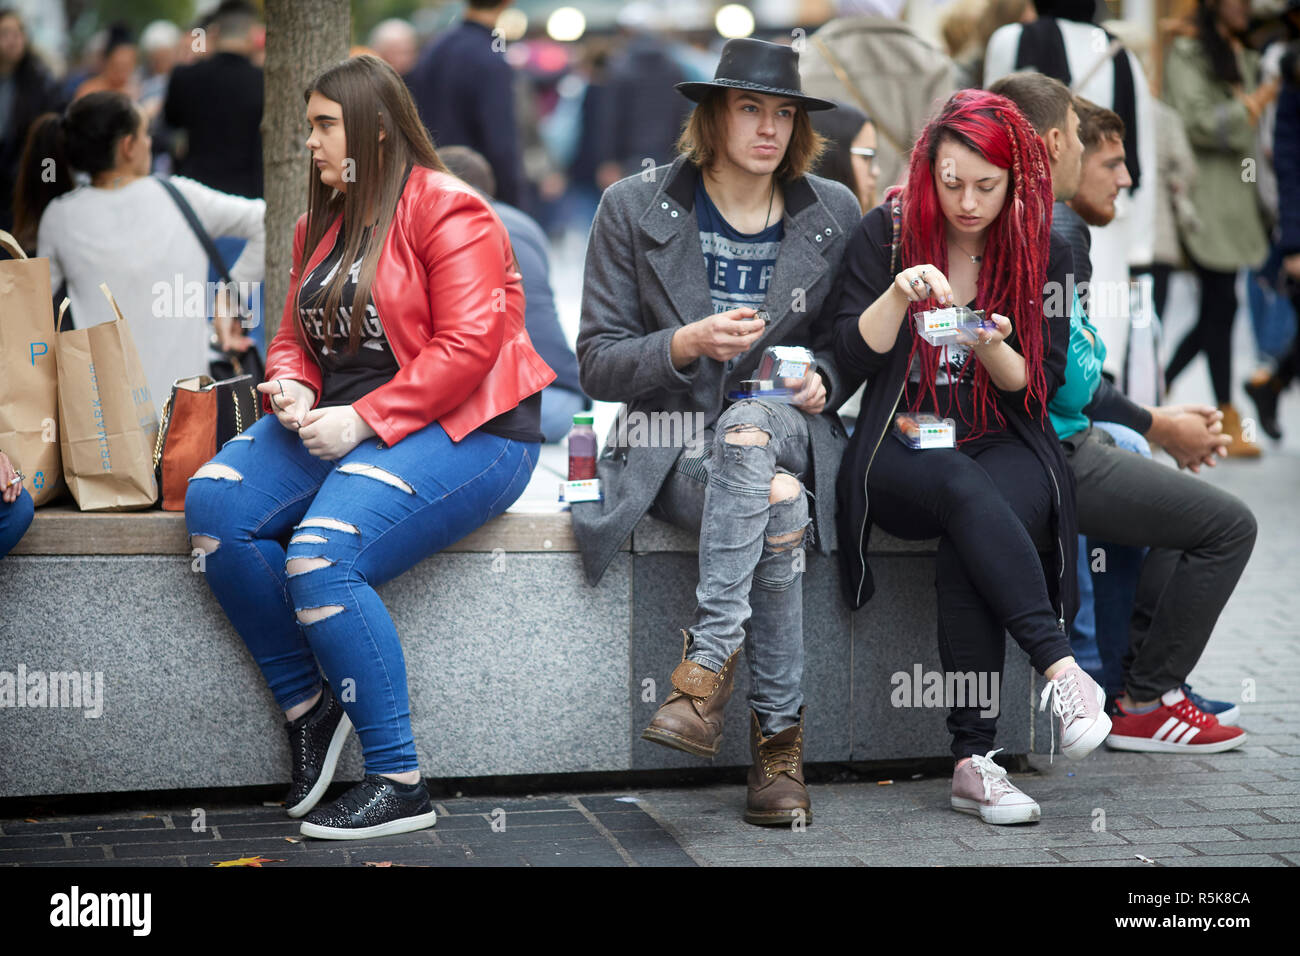 Liverpool city centre people resting on street furniture benches - Stock Image